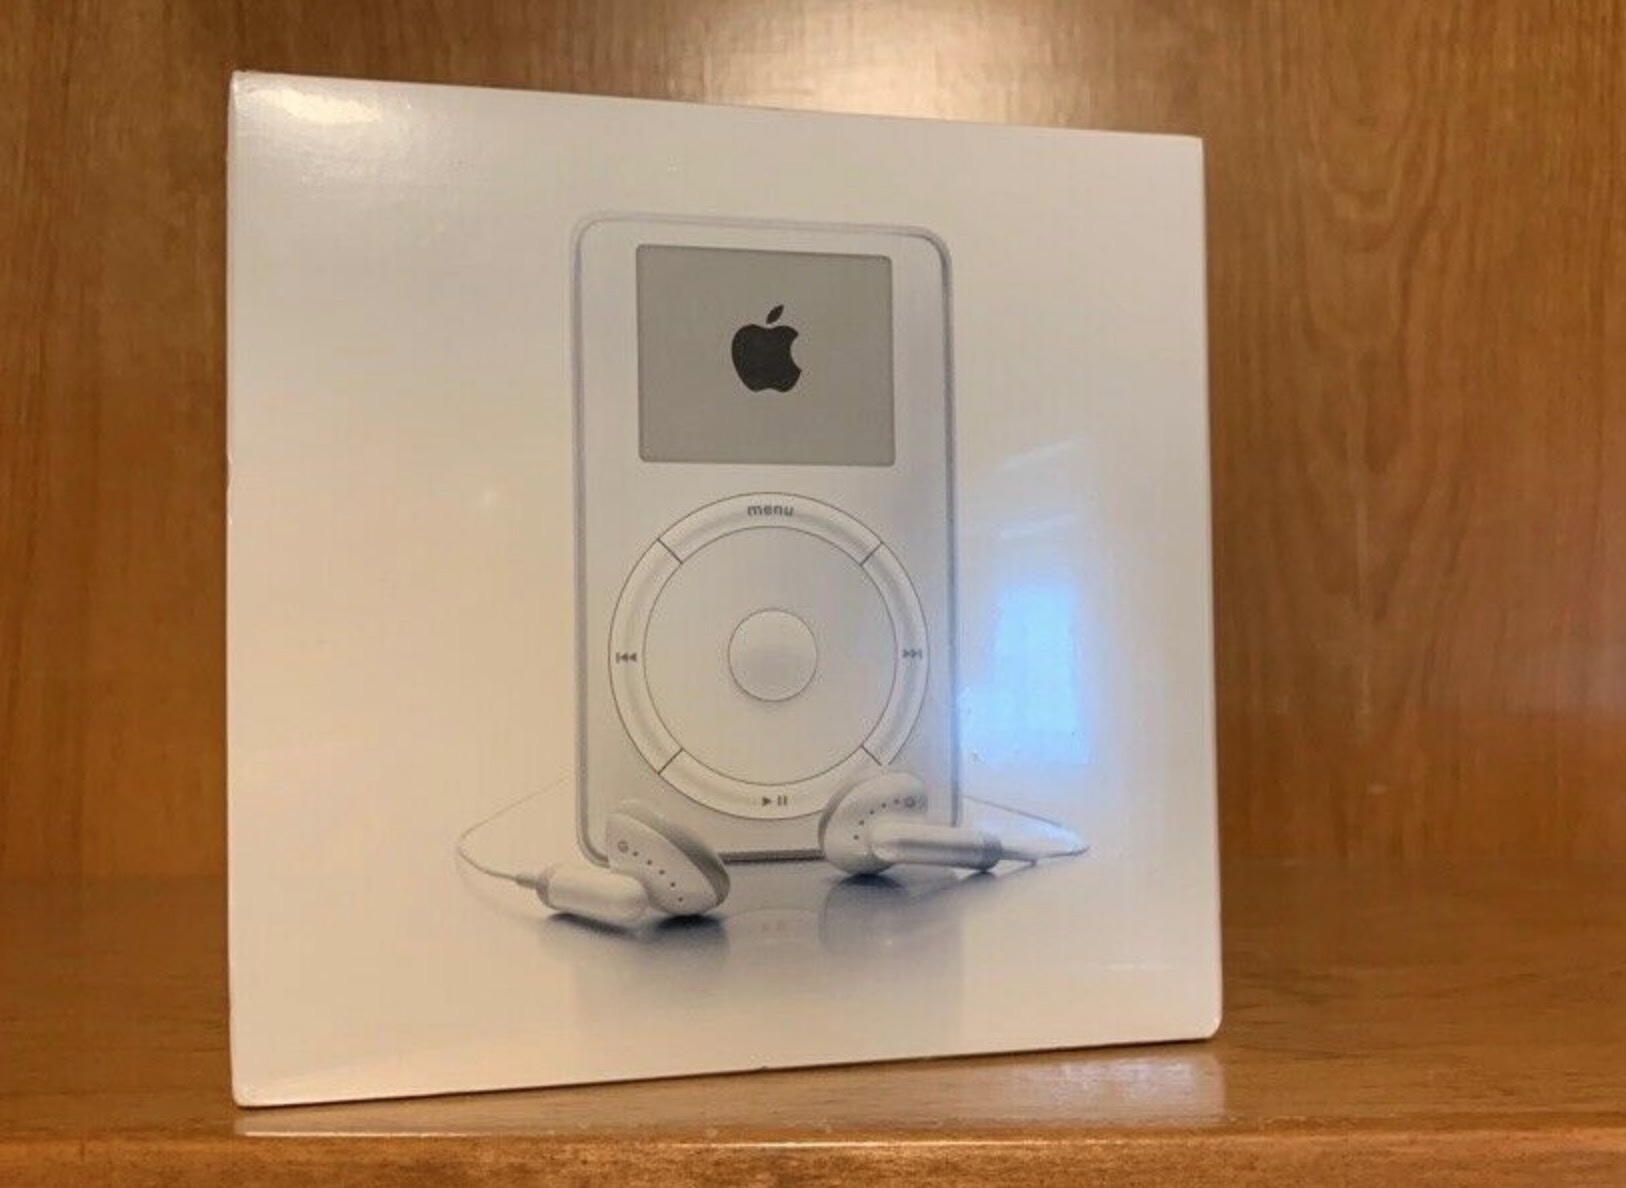 Arte Di Mano Ebay Il Primo Ipod All Asta Su Ebay A 19 995 Dollari Wired